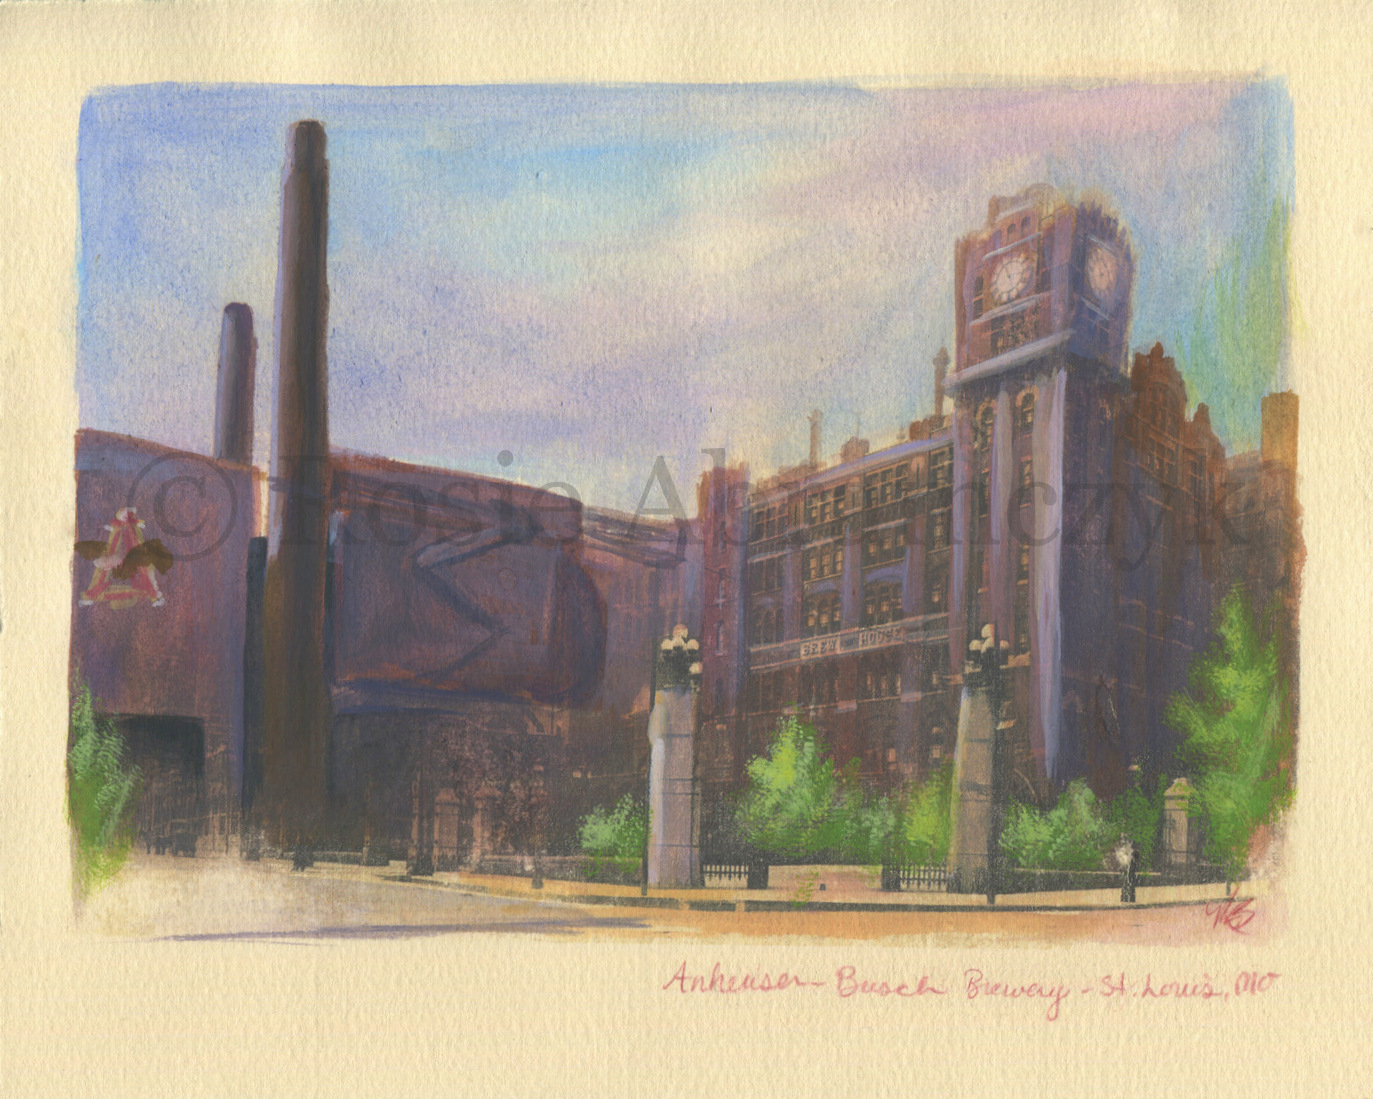 Anheuser-Busch Brewery, St. Louis, MO, by Rosie Abramczyk, Gouache and Xerox Transfer, 2008